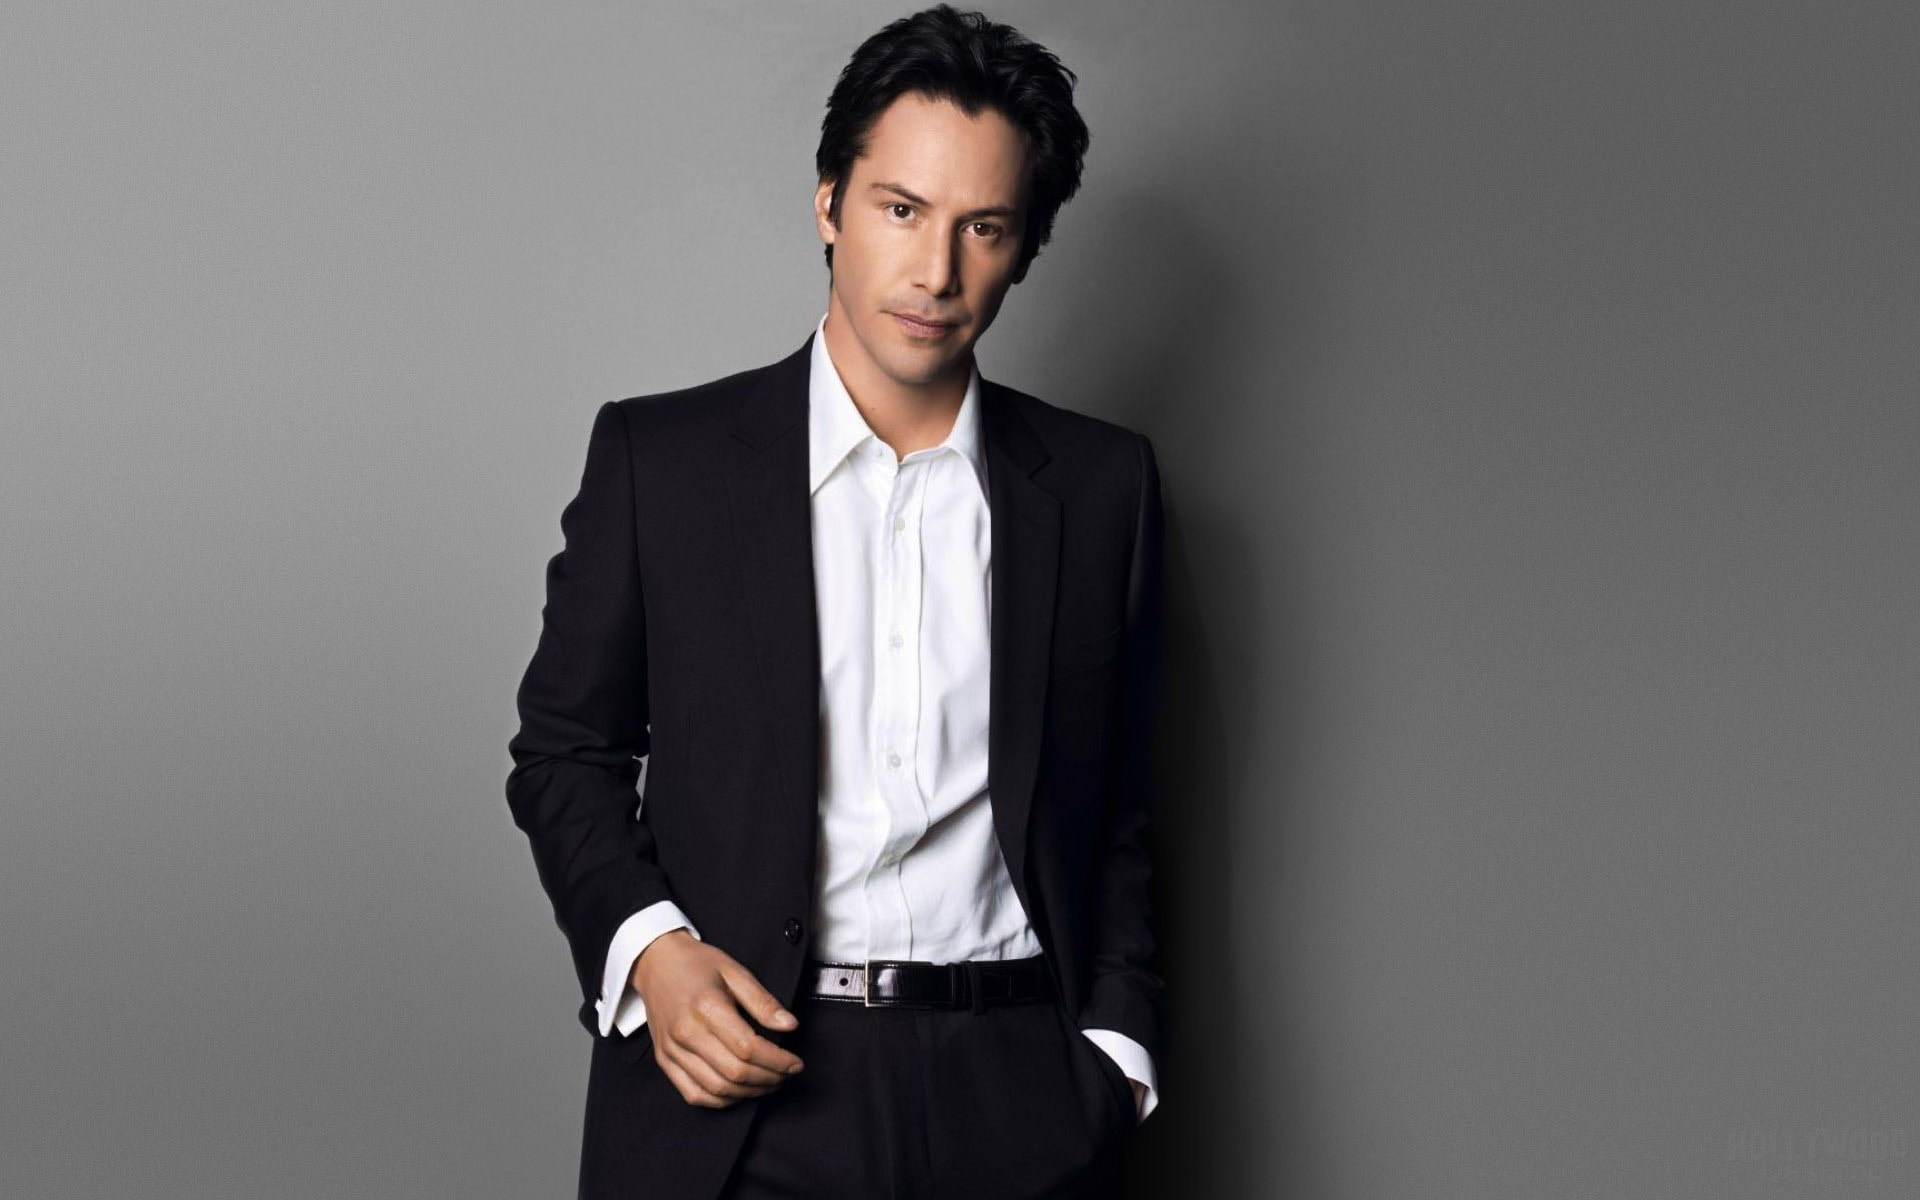 Keanu Reeves Full hd wallpapers